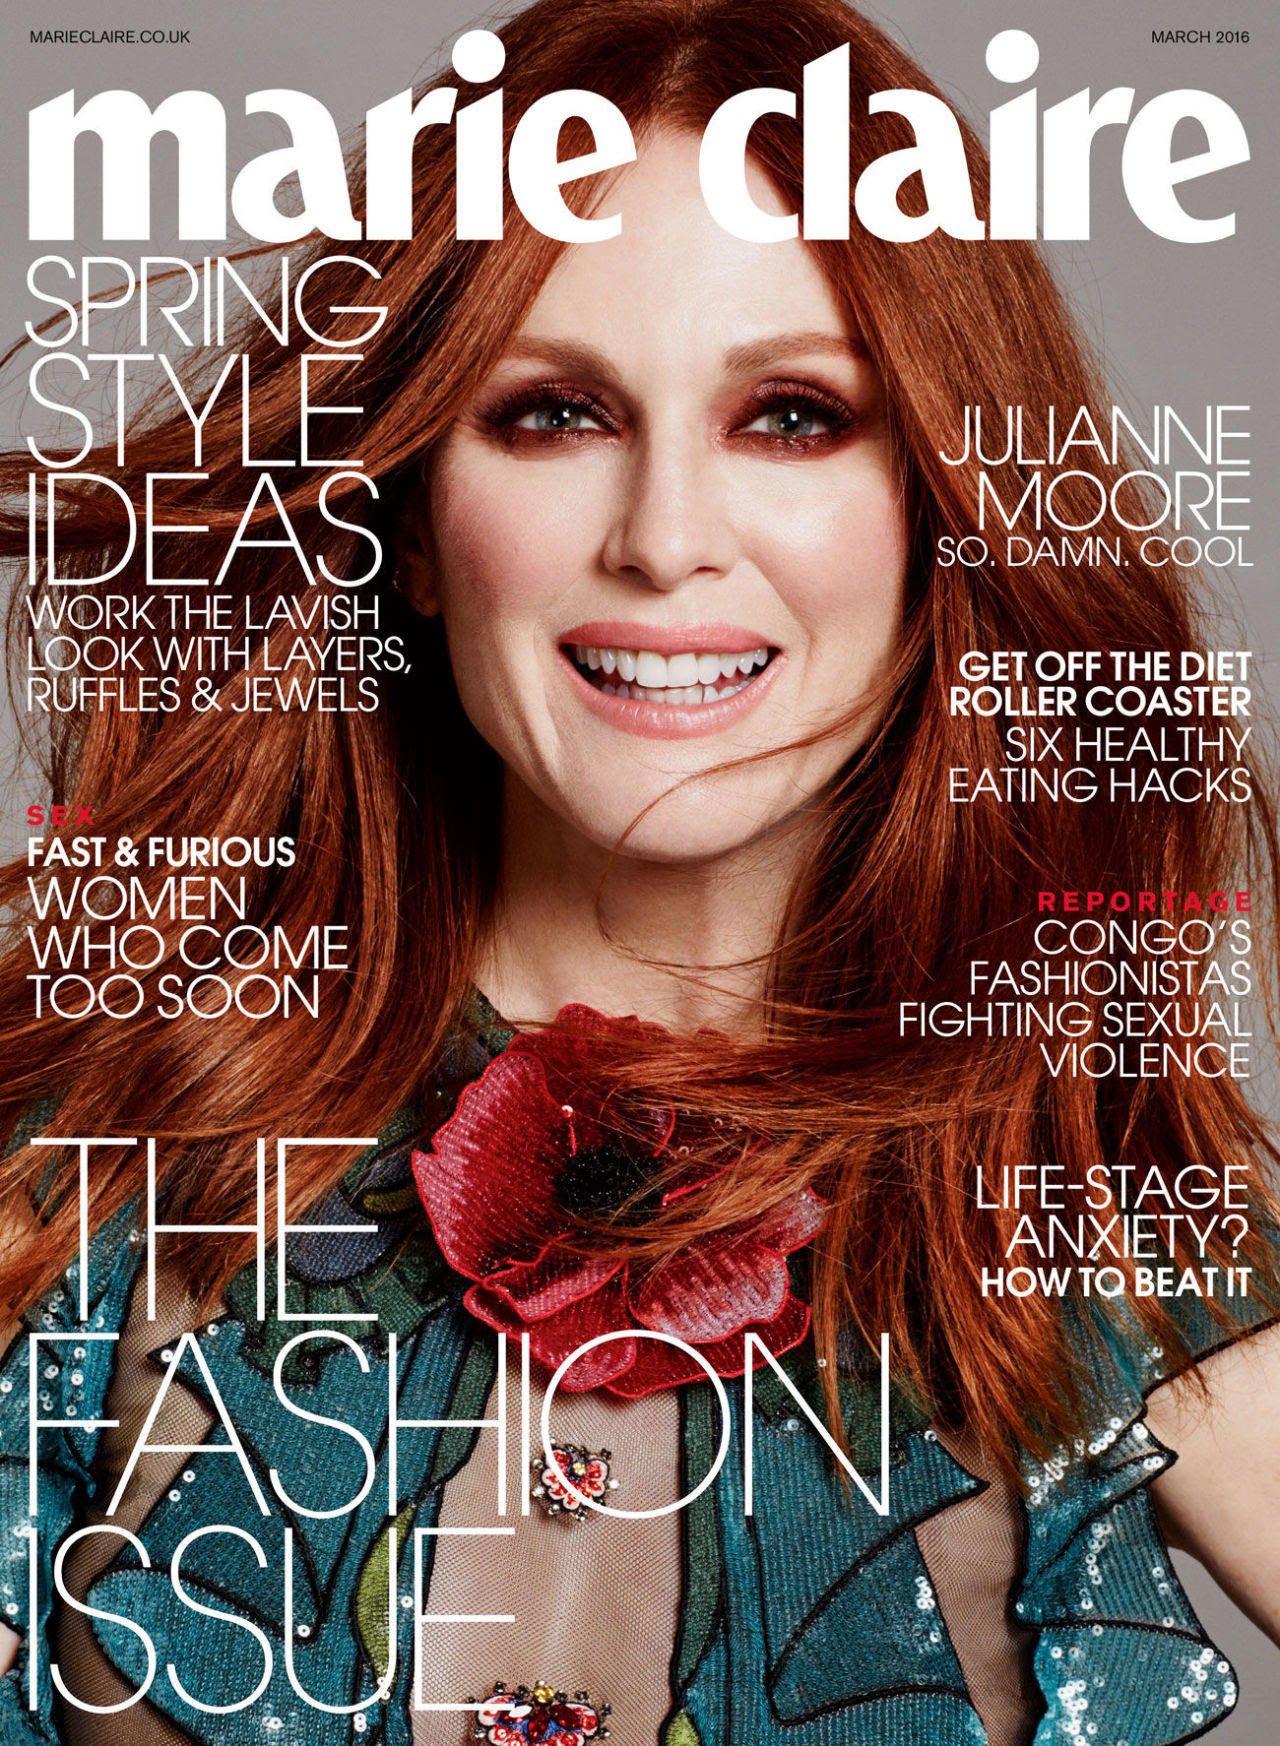 Julianne-Moore-Marie-Claire-UK-March-2016-Issue-Fashion-Gucci-Tom-Lorenzo-Site (1)